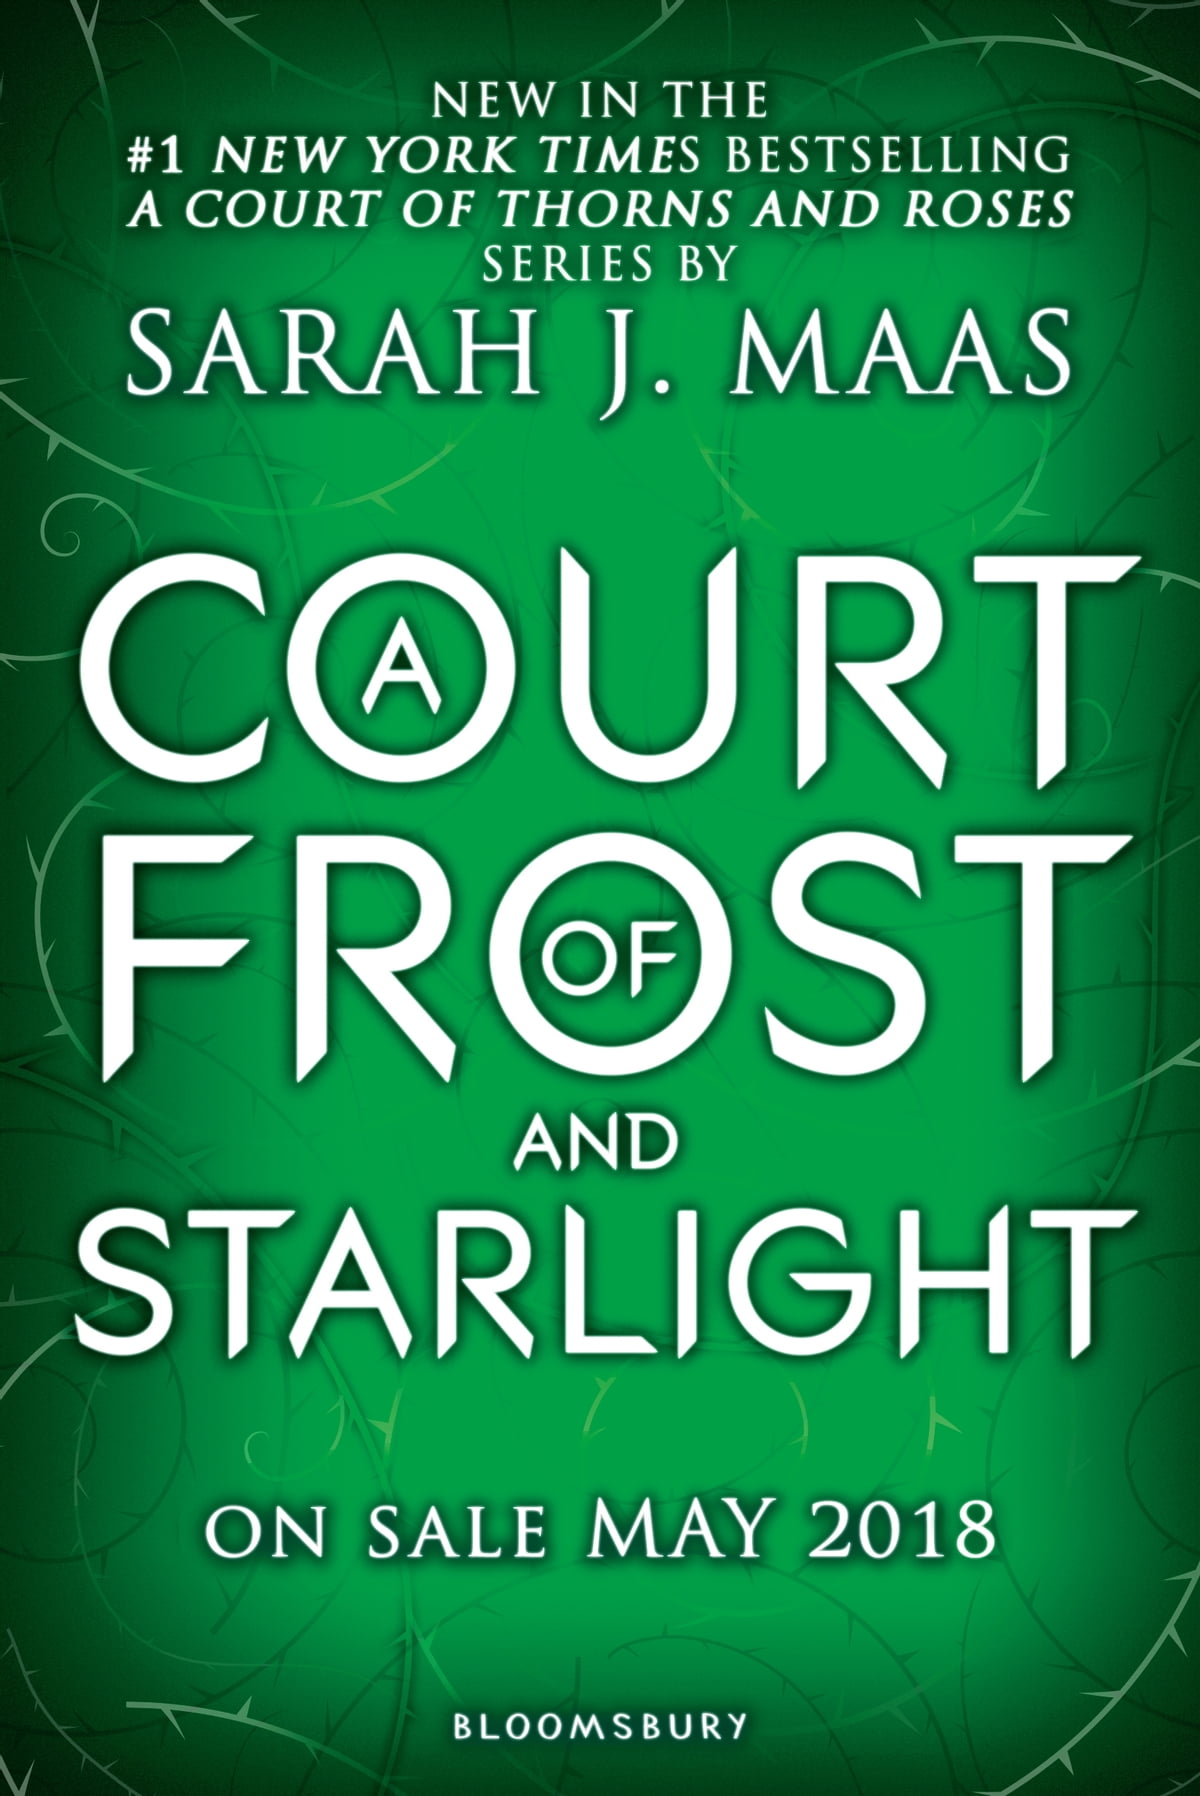 Empire of storms ebook by sarah j maas 9781619636088 rakuten kobo a court of frost and starlight ebook by sarah j maas fandeluxe Ebook collections